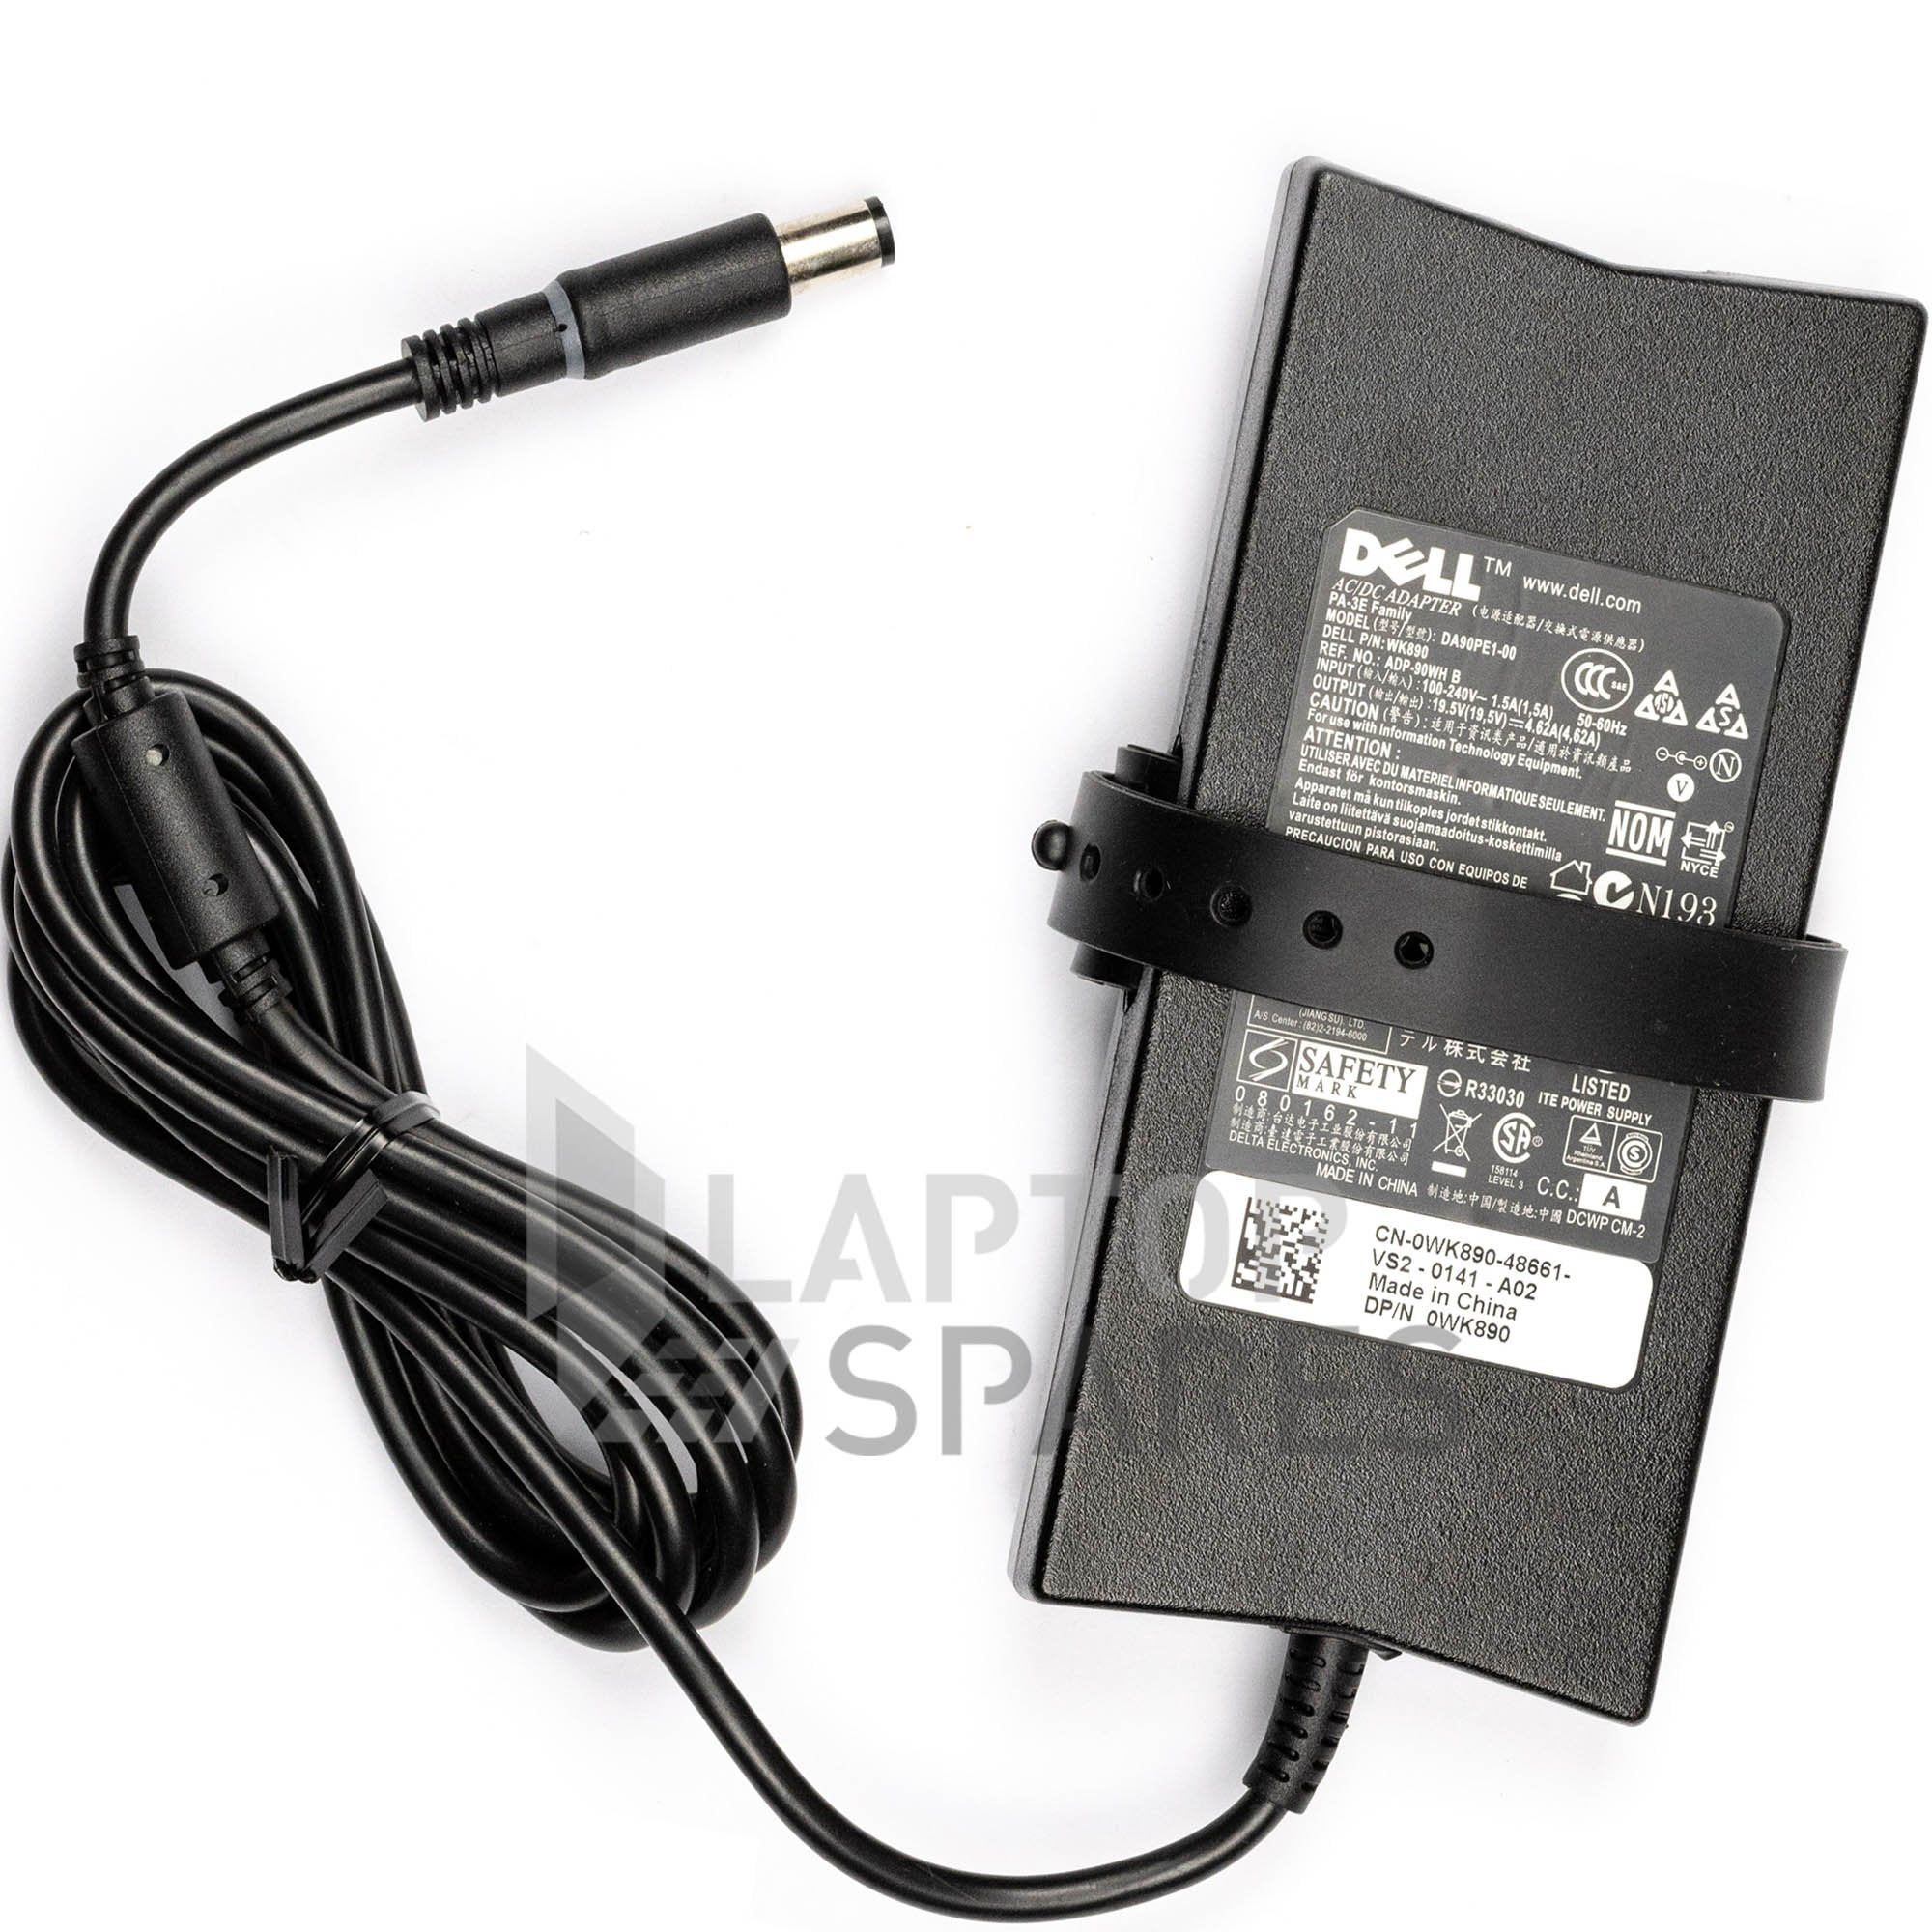 Dell Vostro 1000 1014 1015 Laptop Slim AC Adapter Charger